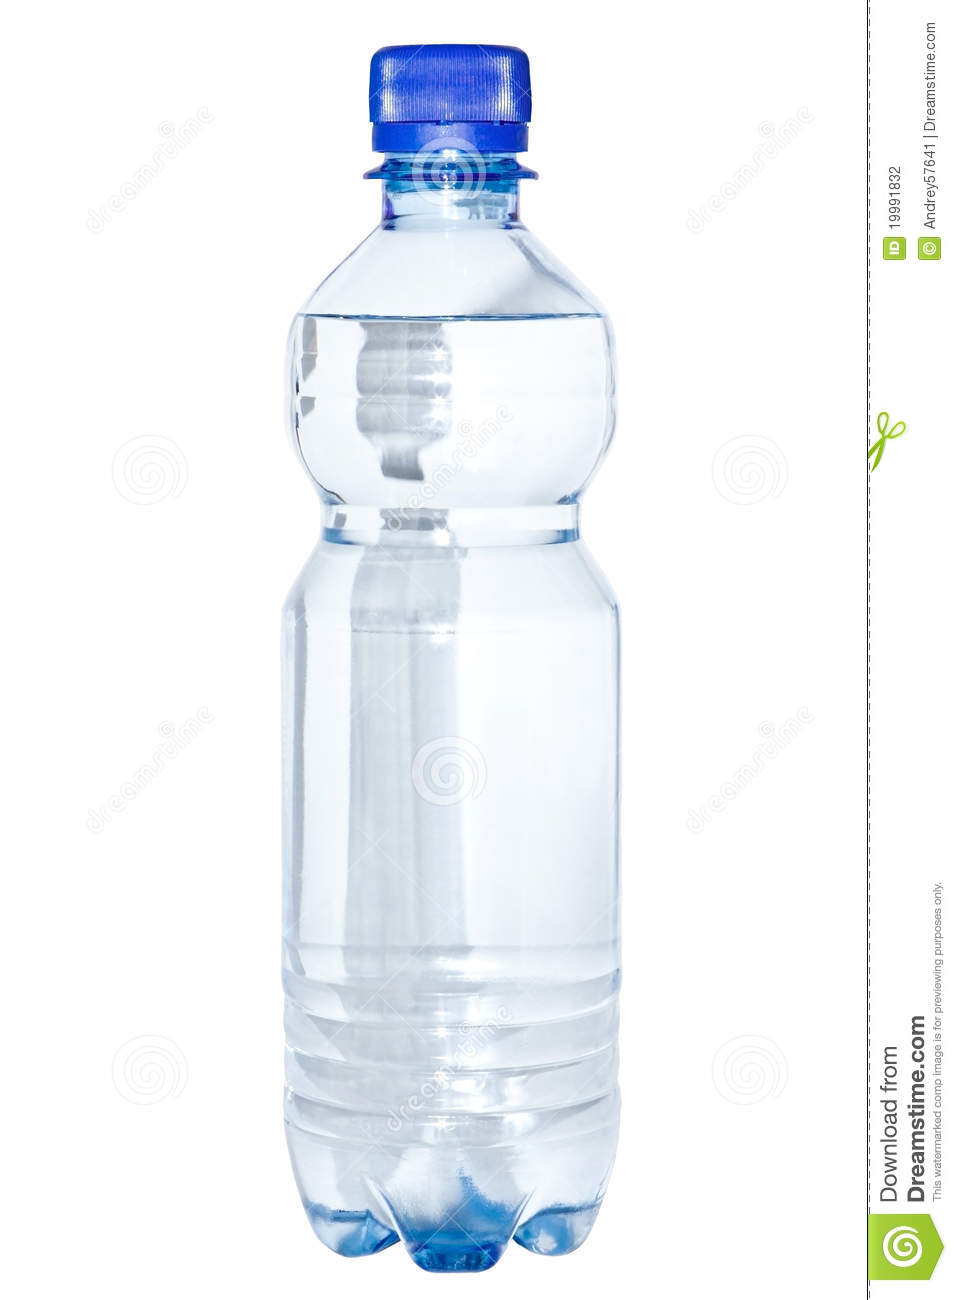 Bottle Of Clean Water Stock Photography - Image: 19991832